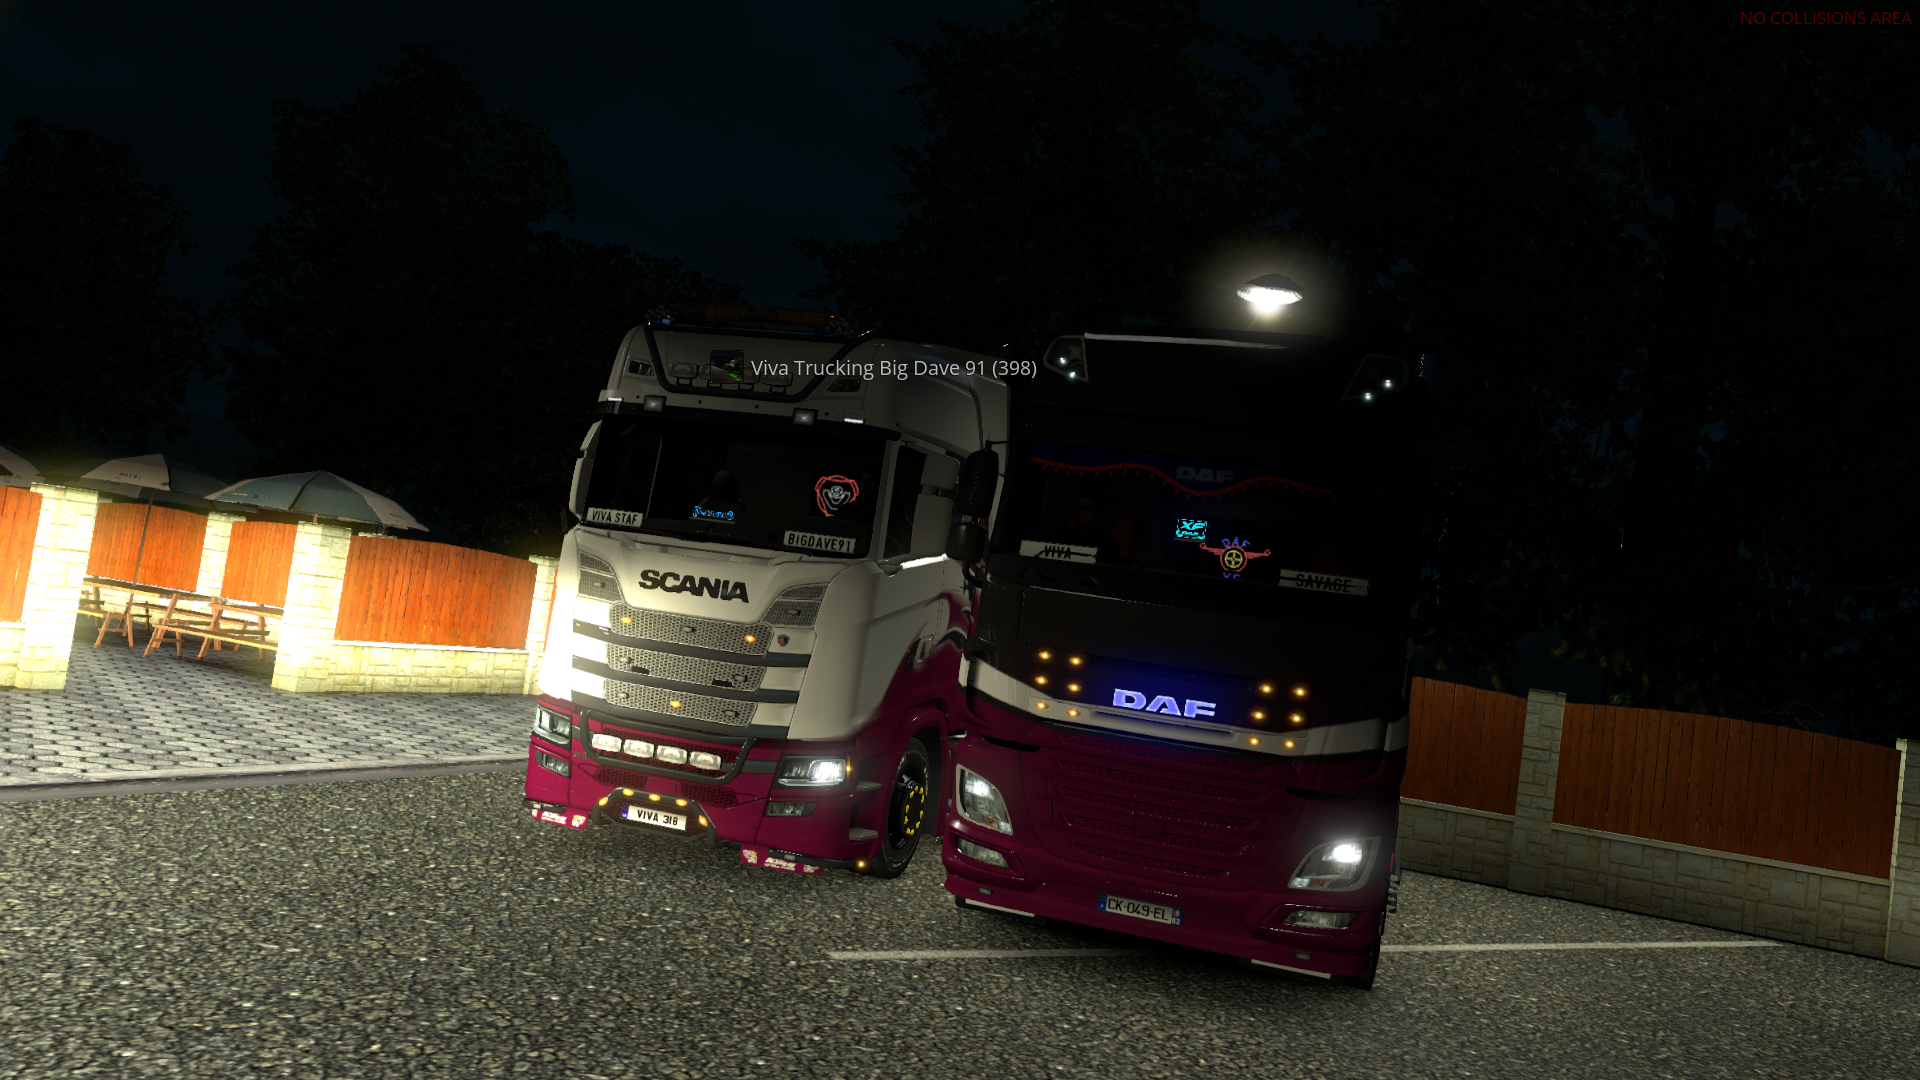 ets2_20180916_122839_00.png